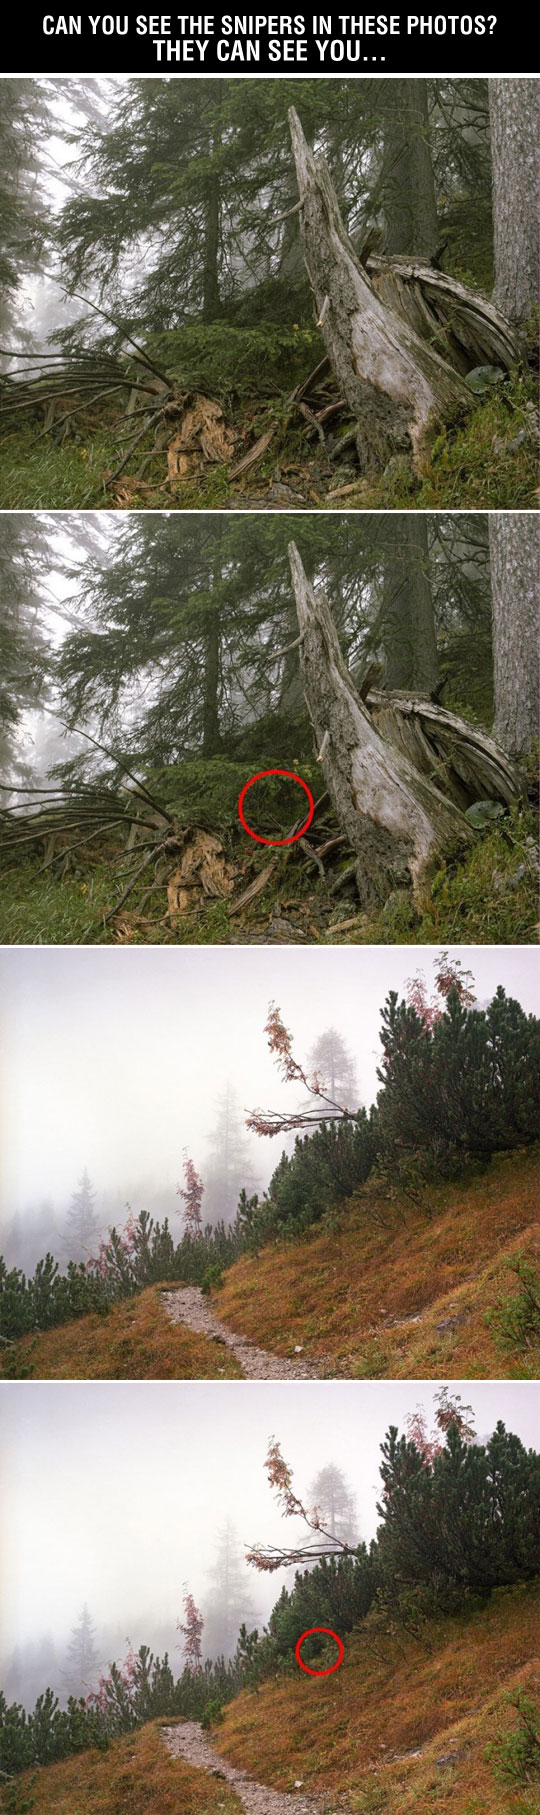 cool-sniper-camouflage-forest-woods-hidden